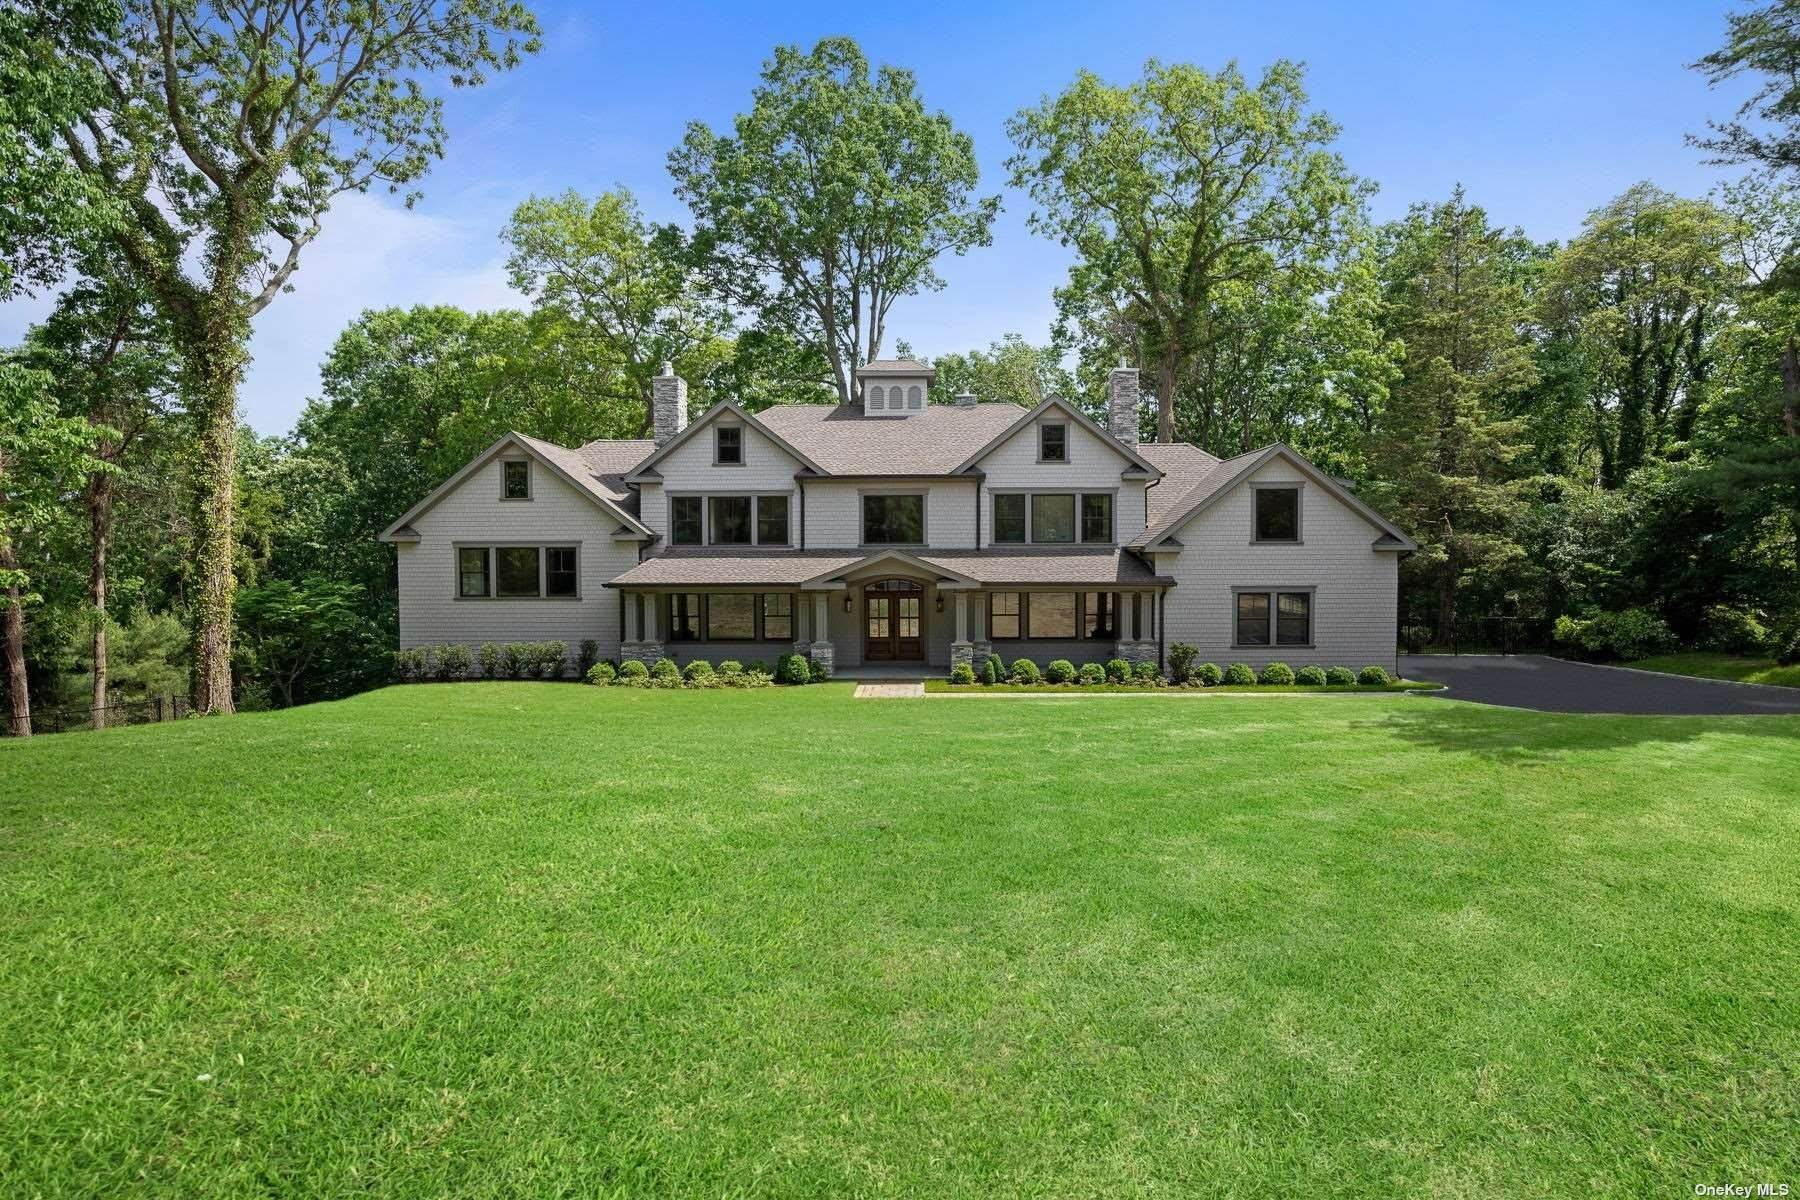 Residential for Sale at 147 Laurel Lane Laurel Hollow, New York 11791 United States